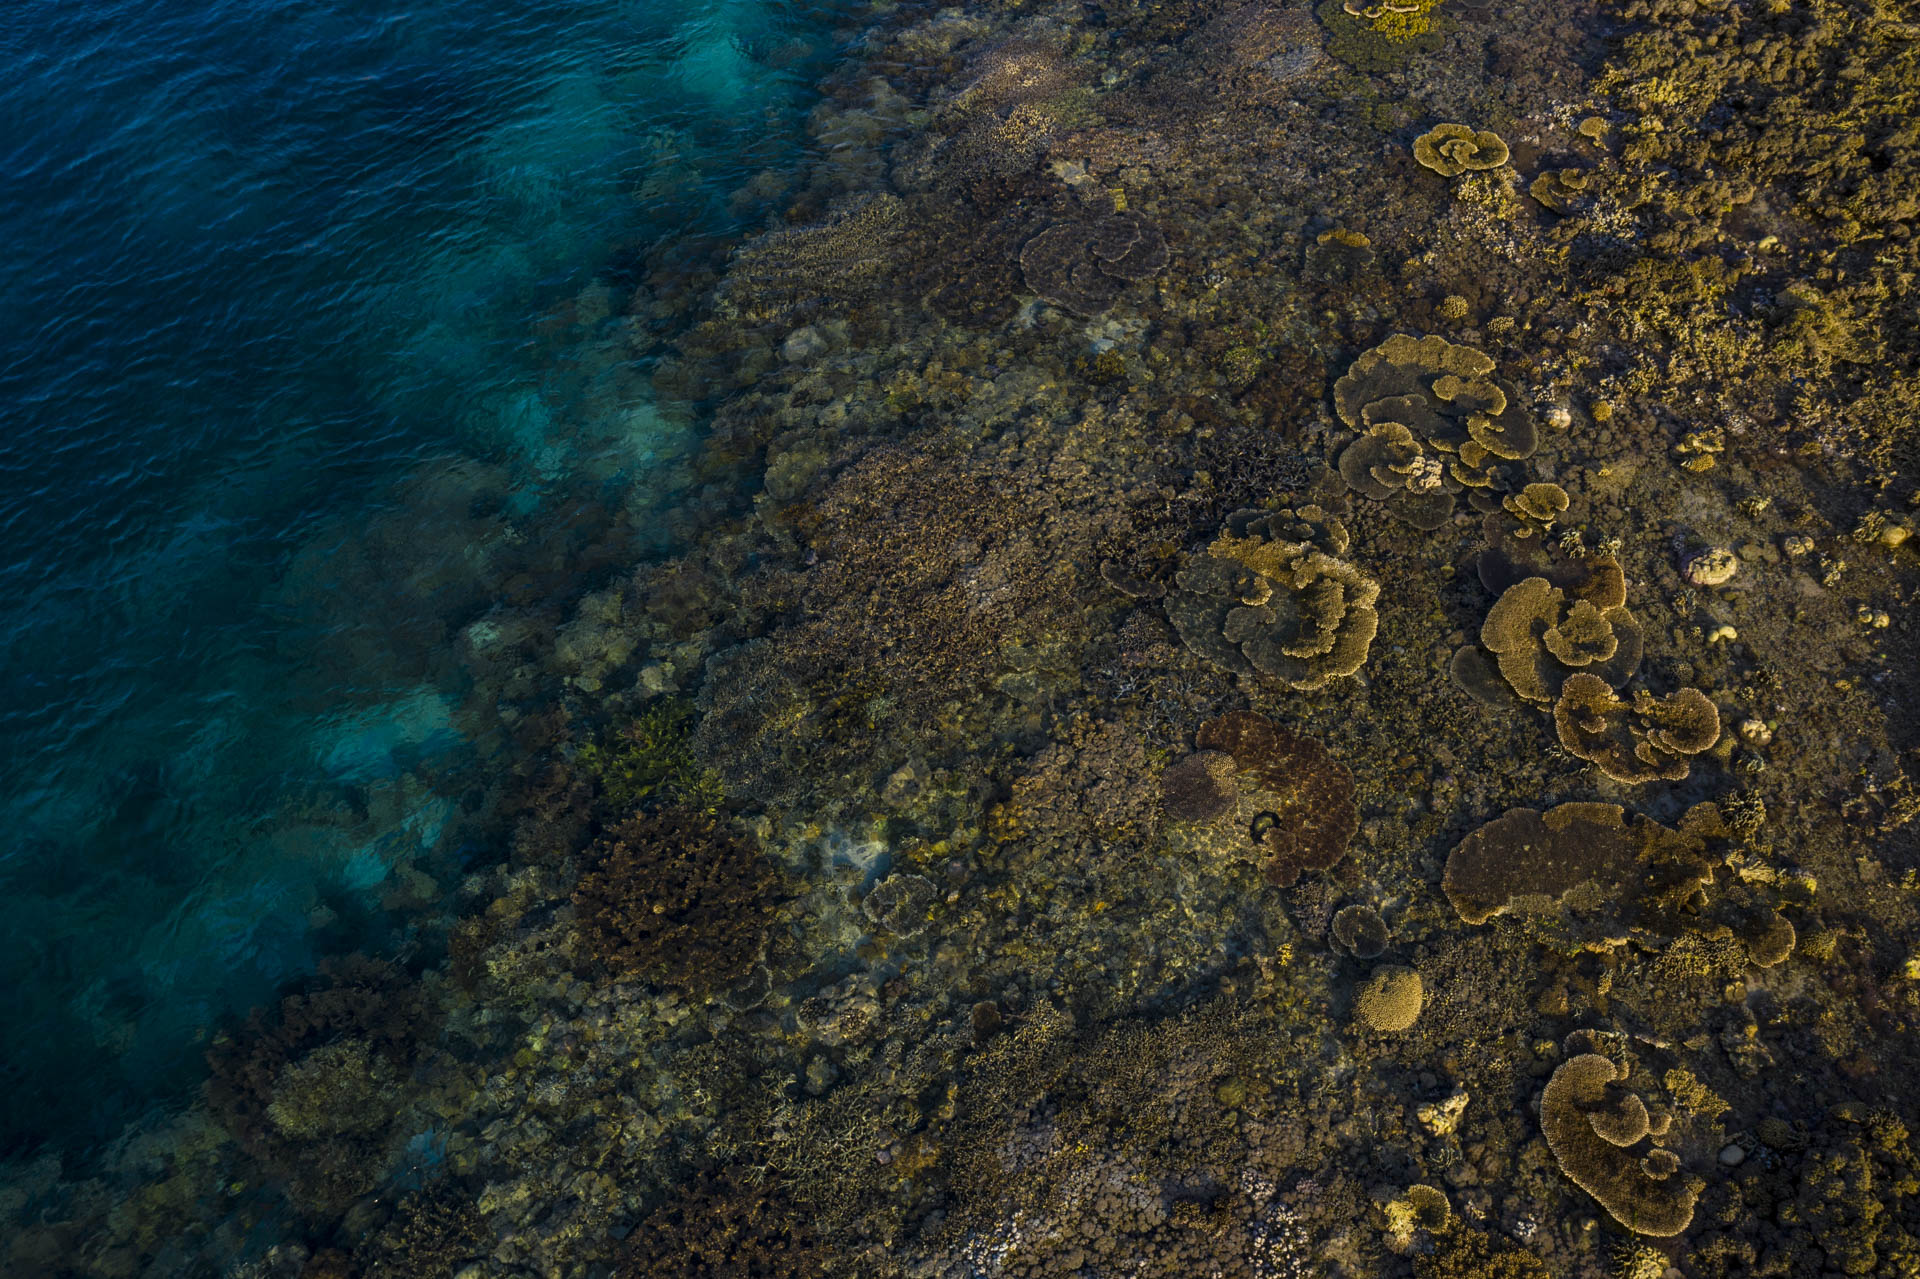 Aerial view of exposed coral reef